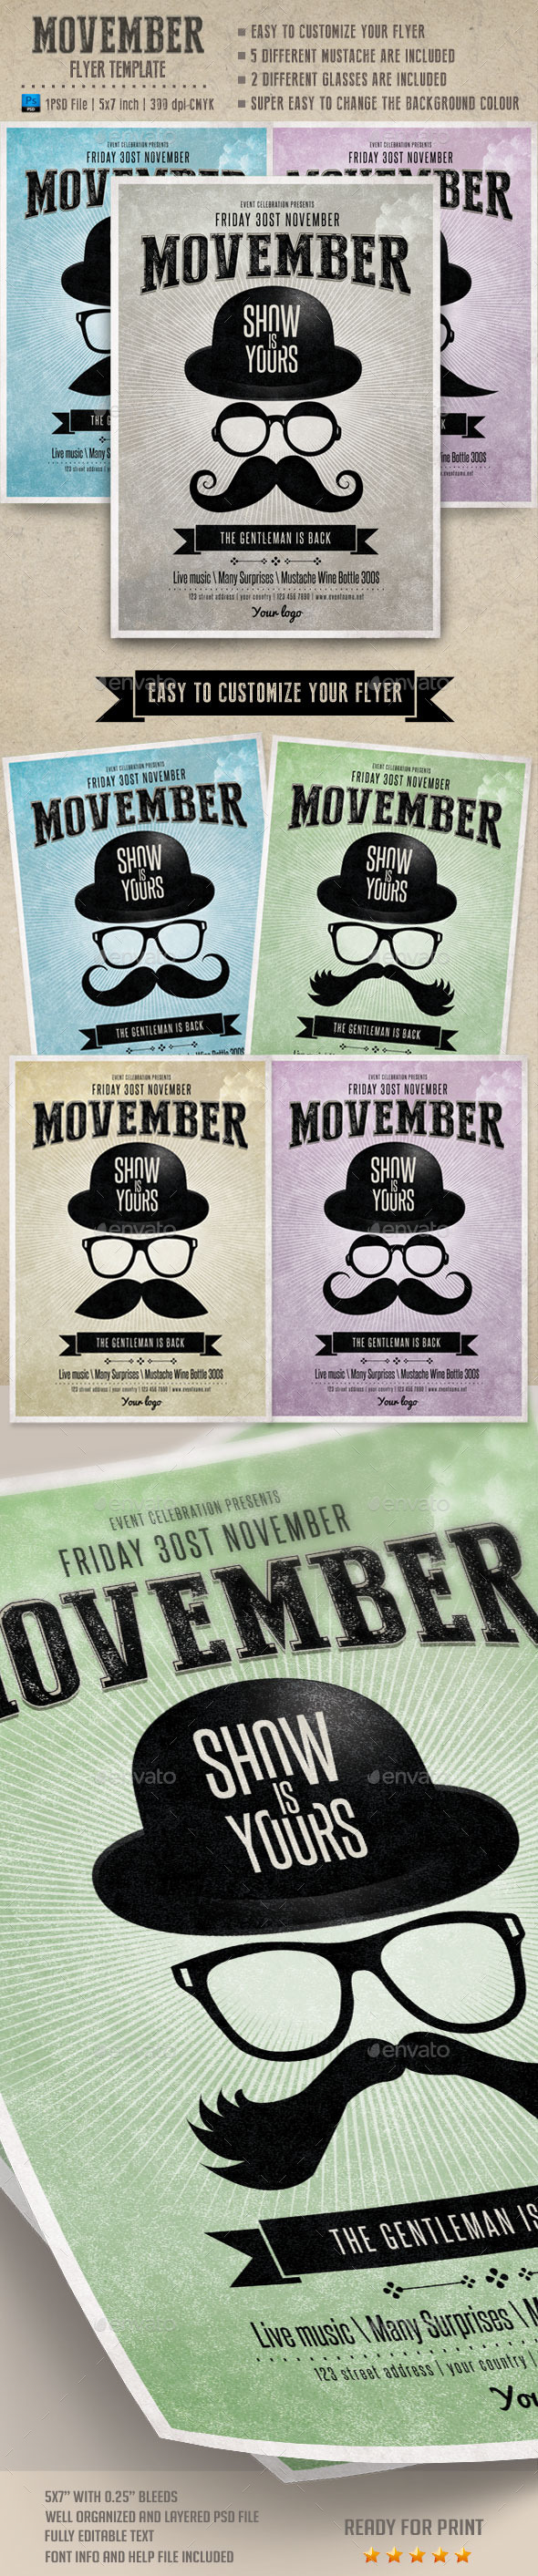 Movember Flyer Template - Events Flyers